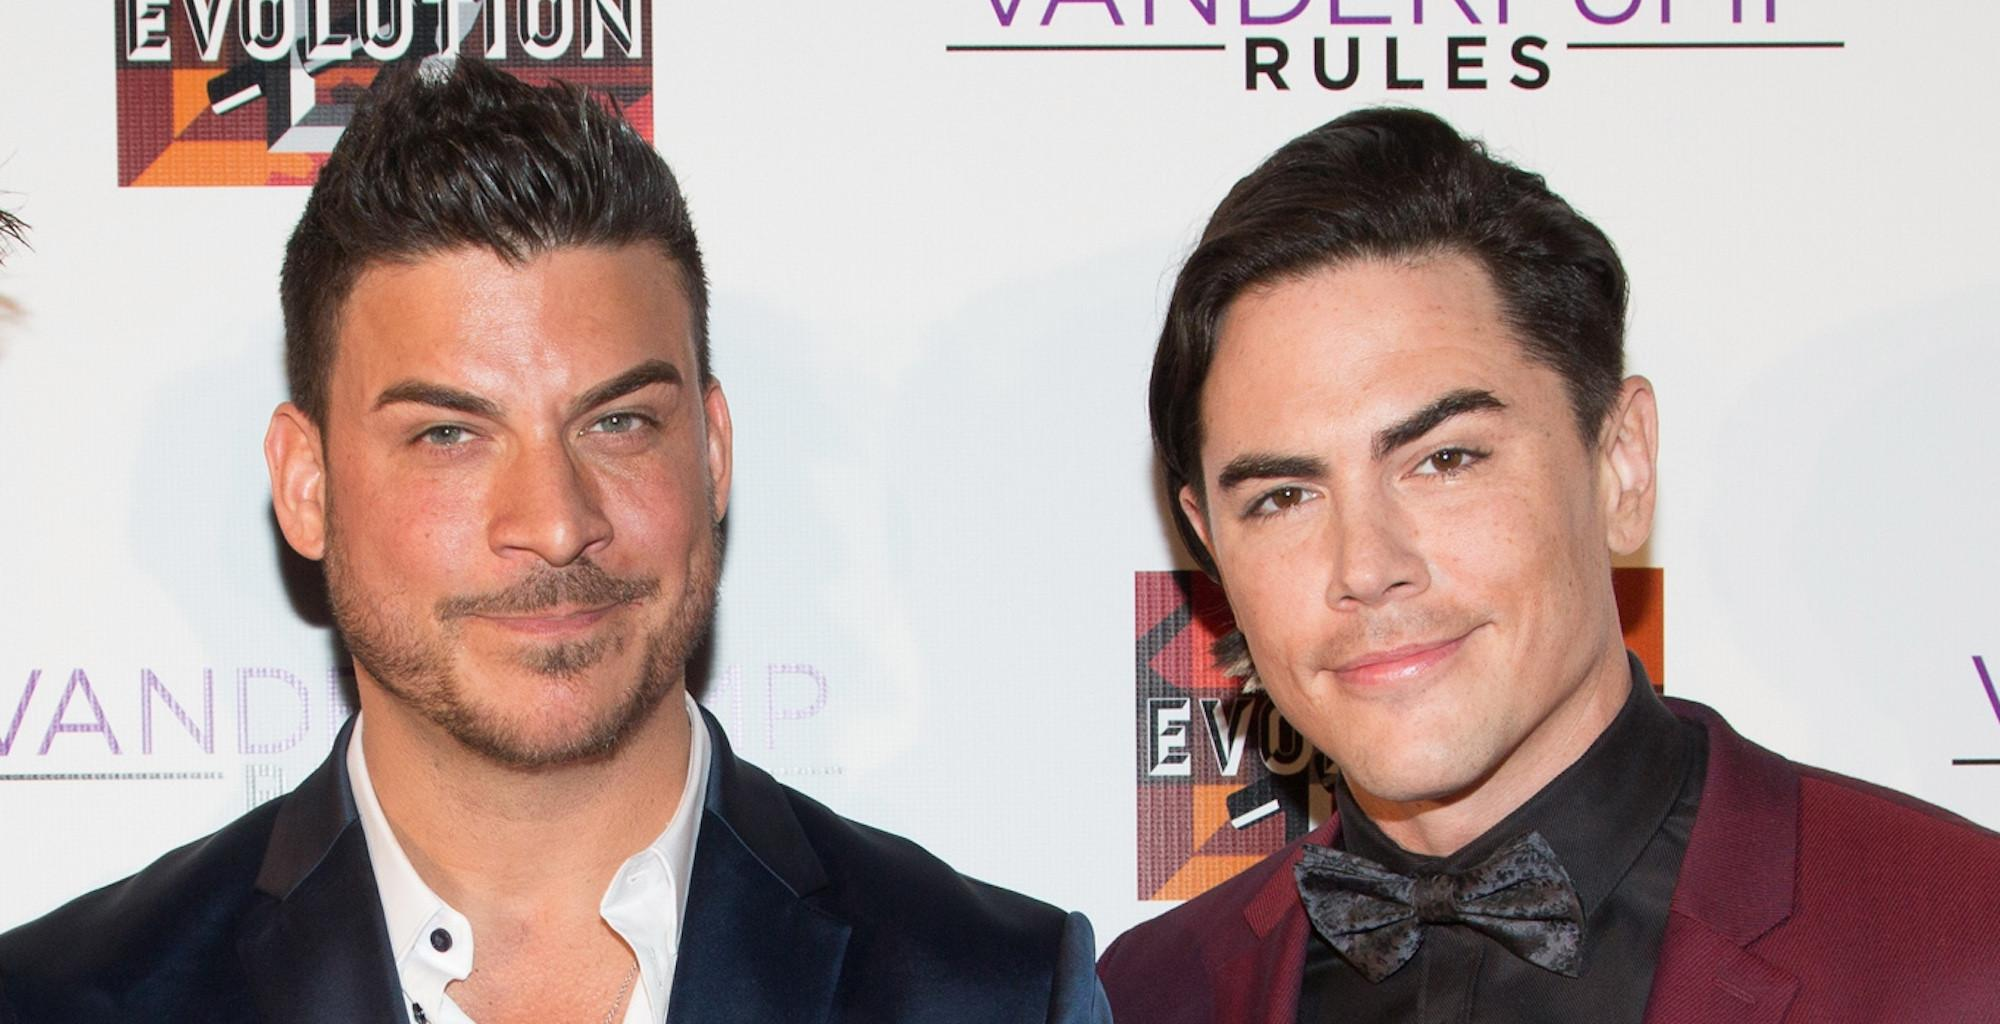 Tom Sandoval Talks About His Feud With Jax Taylor Who Shockingly Blocked Him On Social Media - Are They Friends Again?